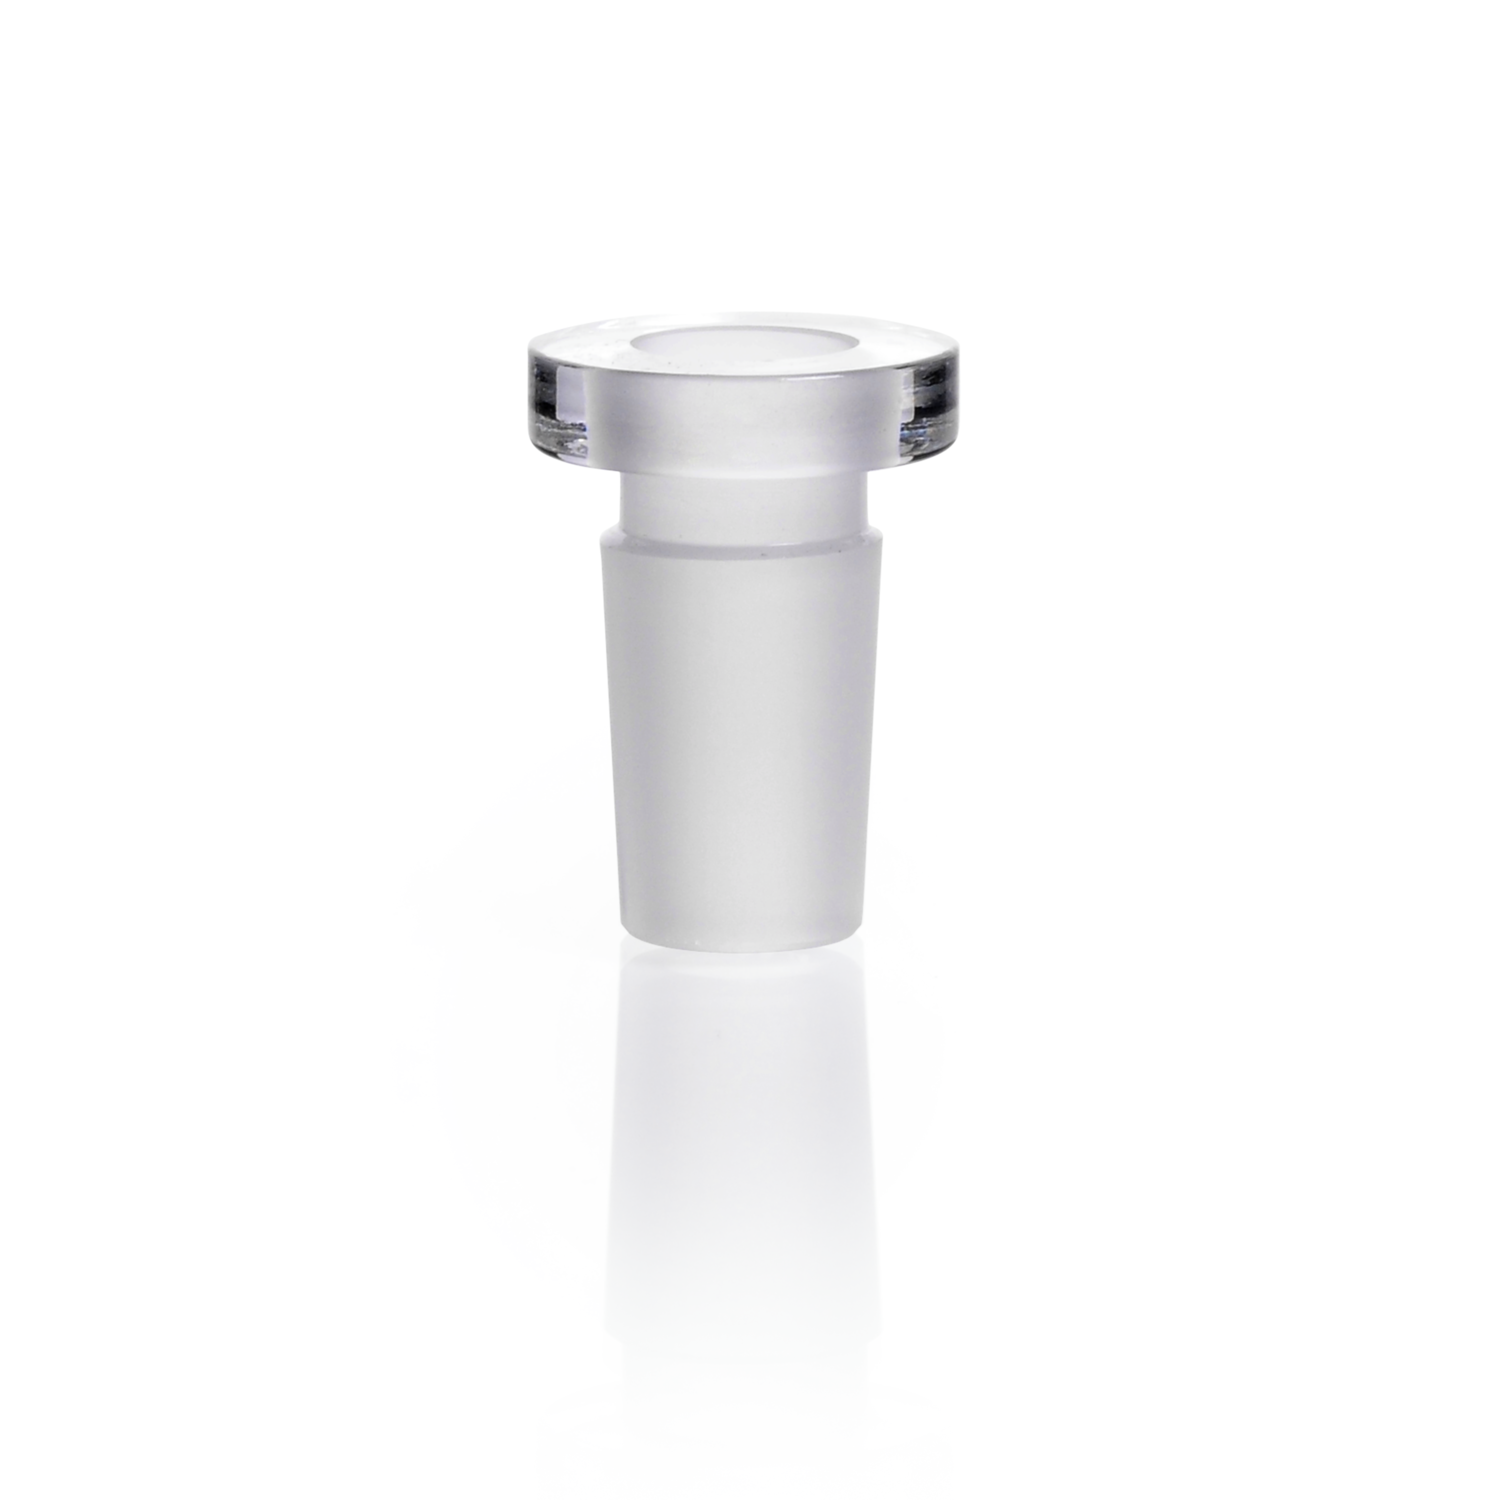 DURAN® Adapter, stopper type, solid, socket NS 24/29, cone NS 29/32